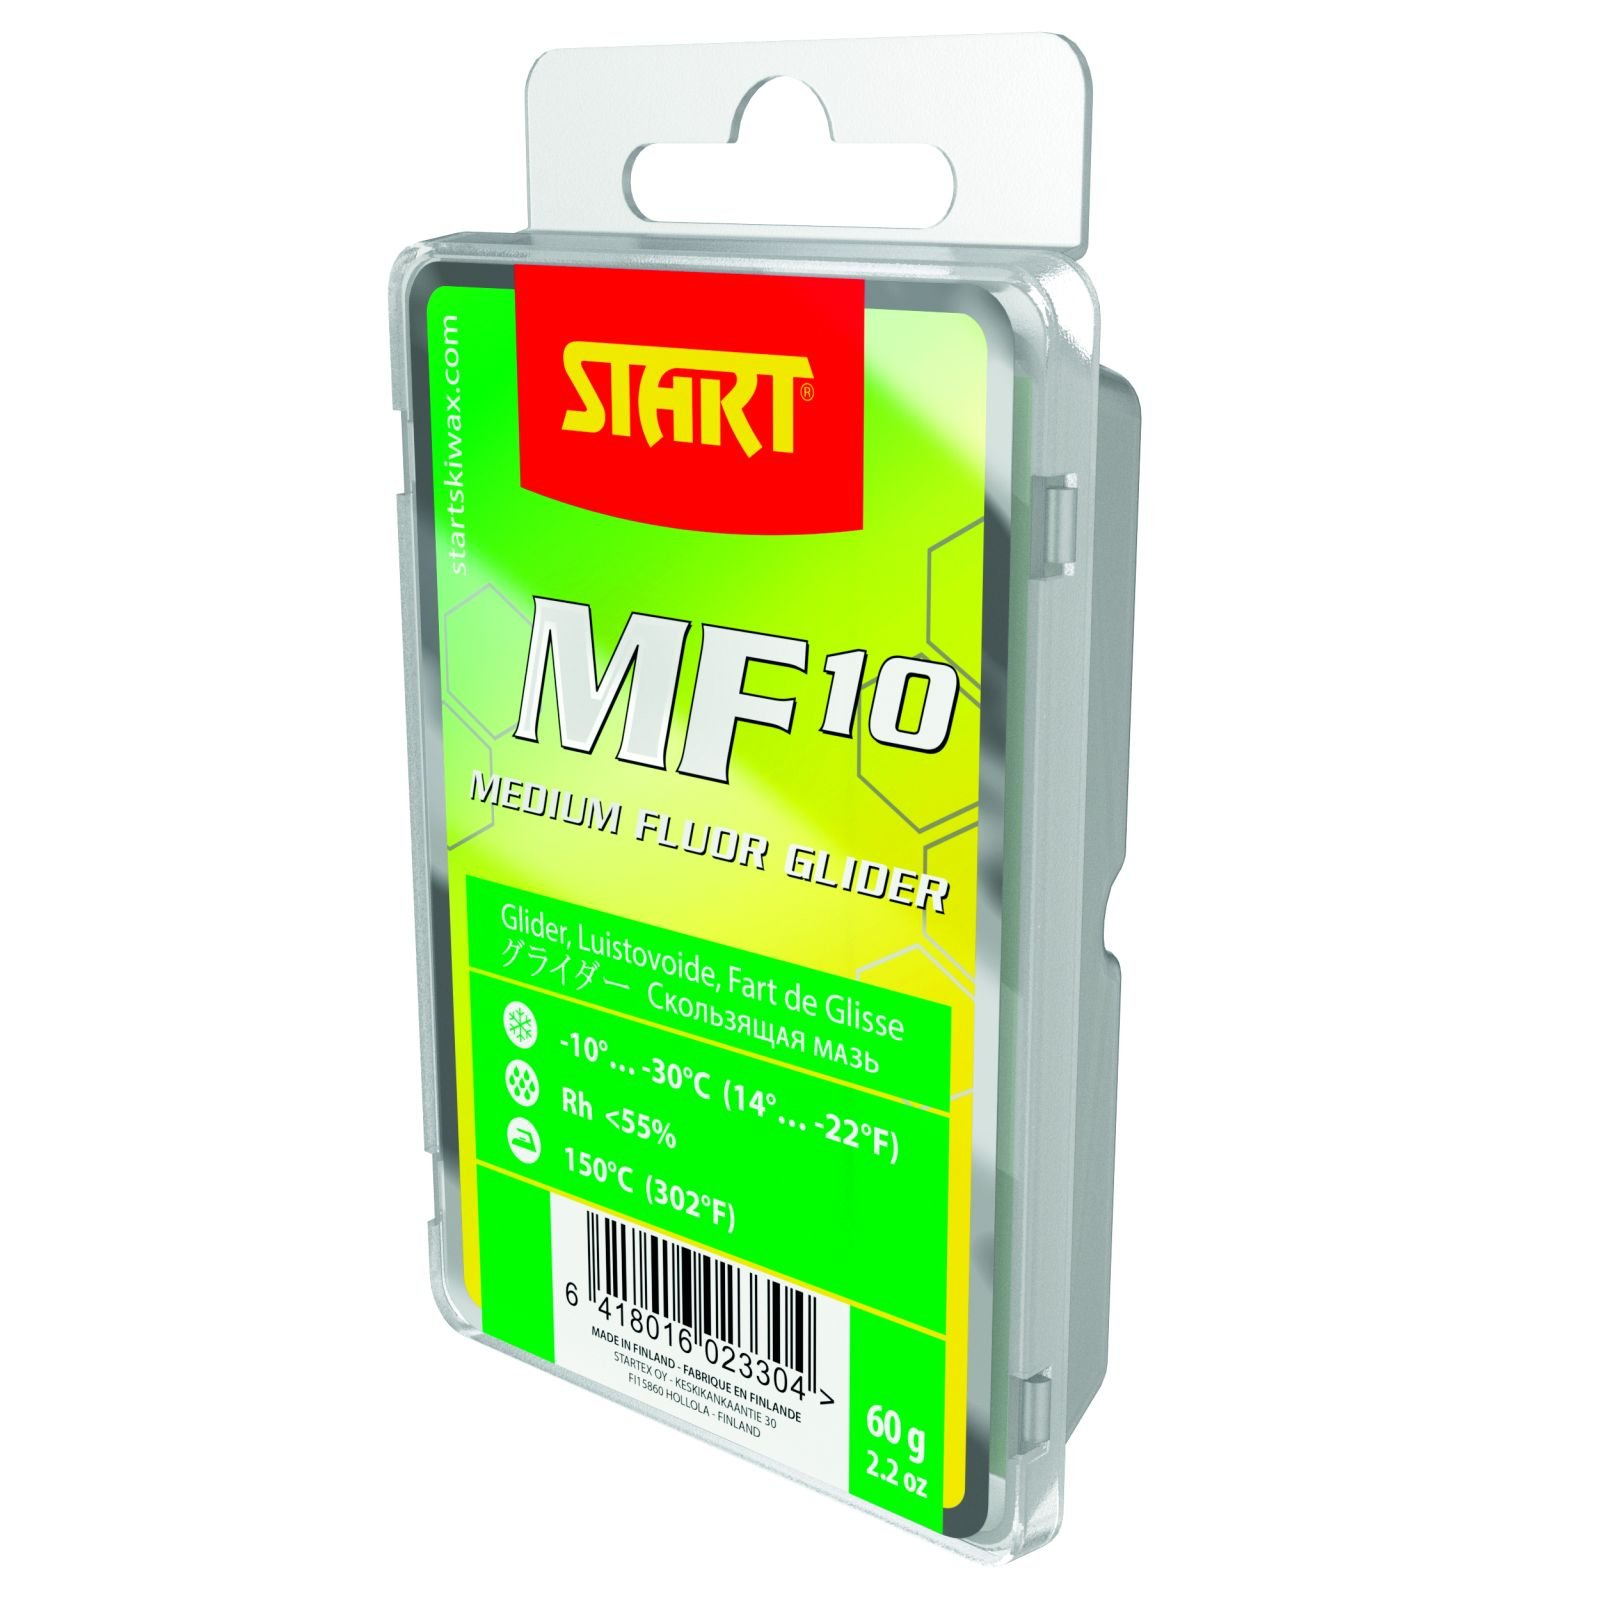 Start MF10 Green Glide Wax - 180g